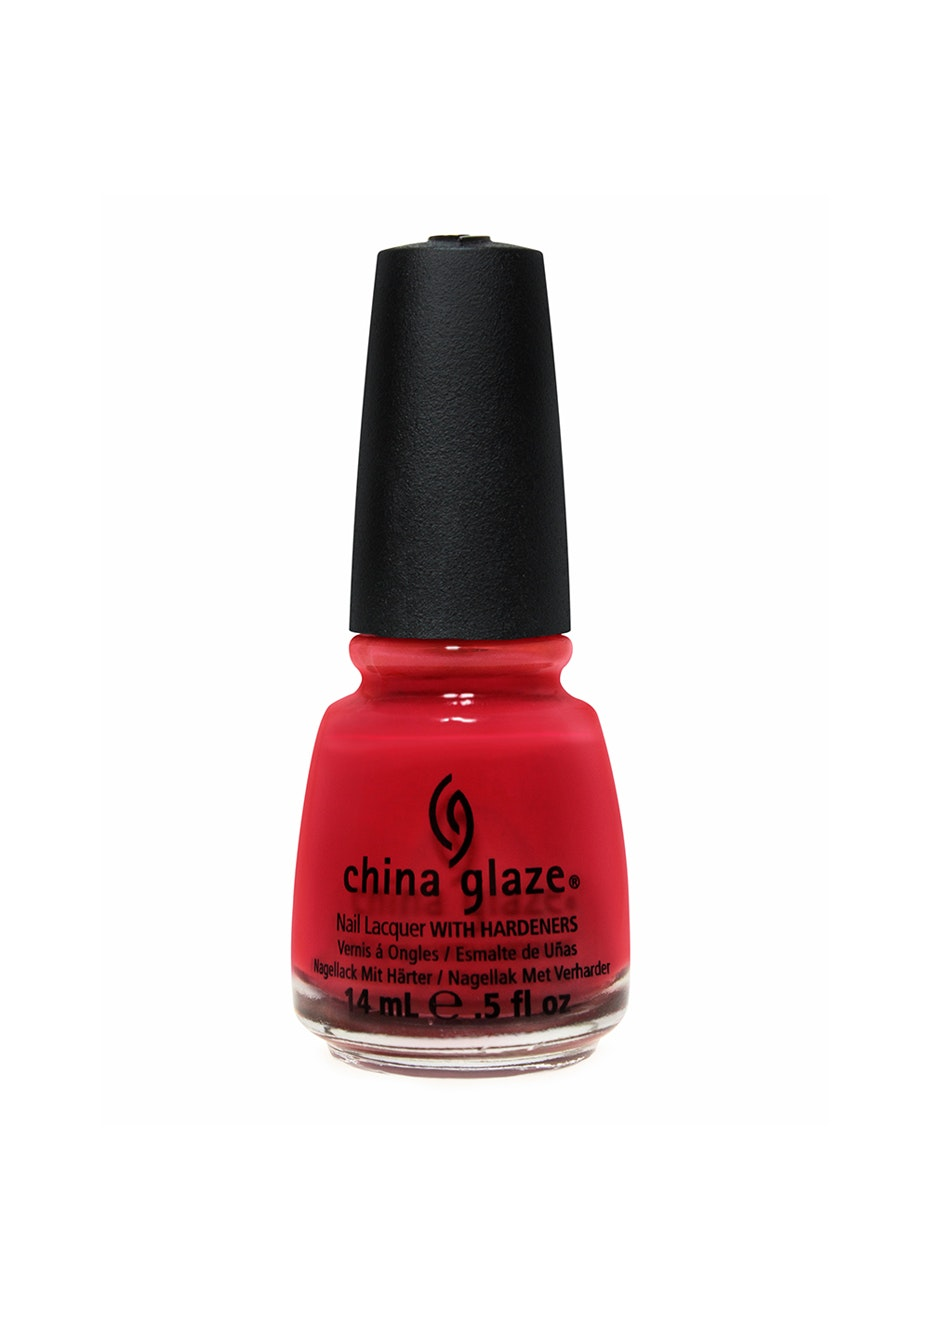 China Glaze #069 ITALIAN RED